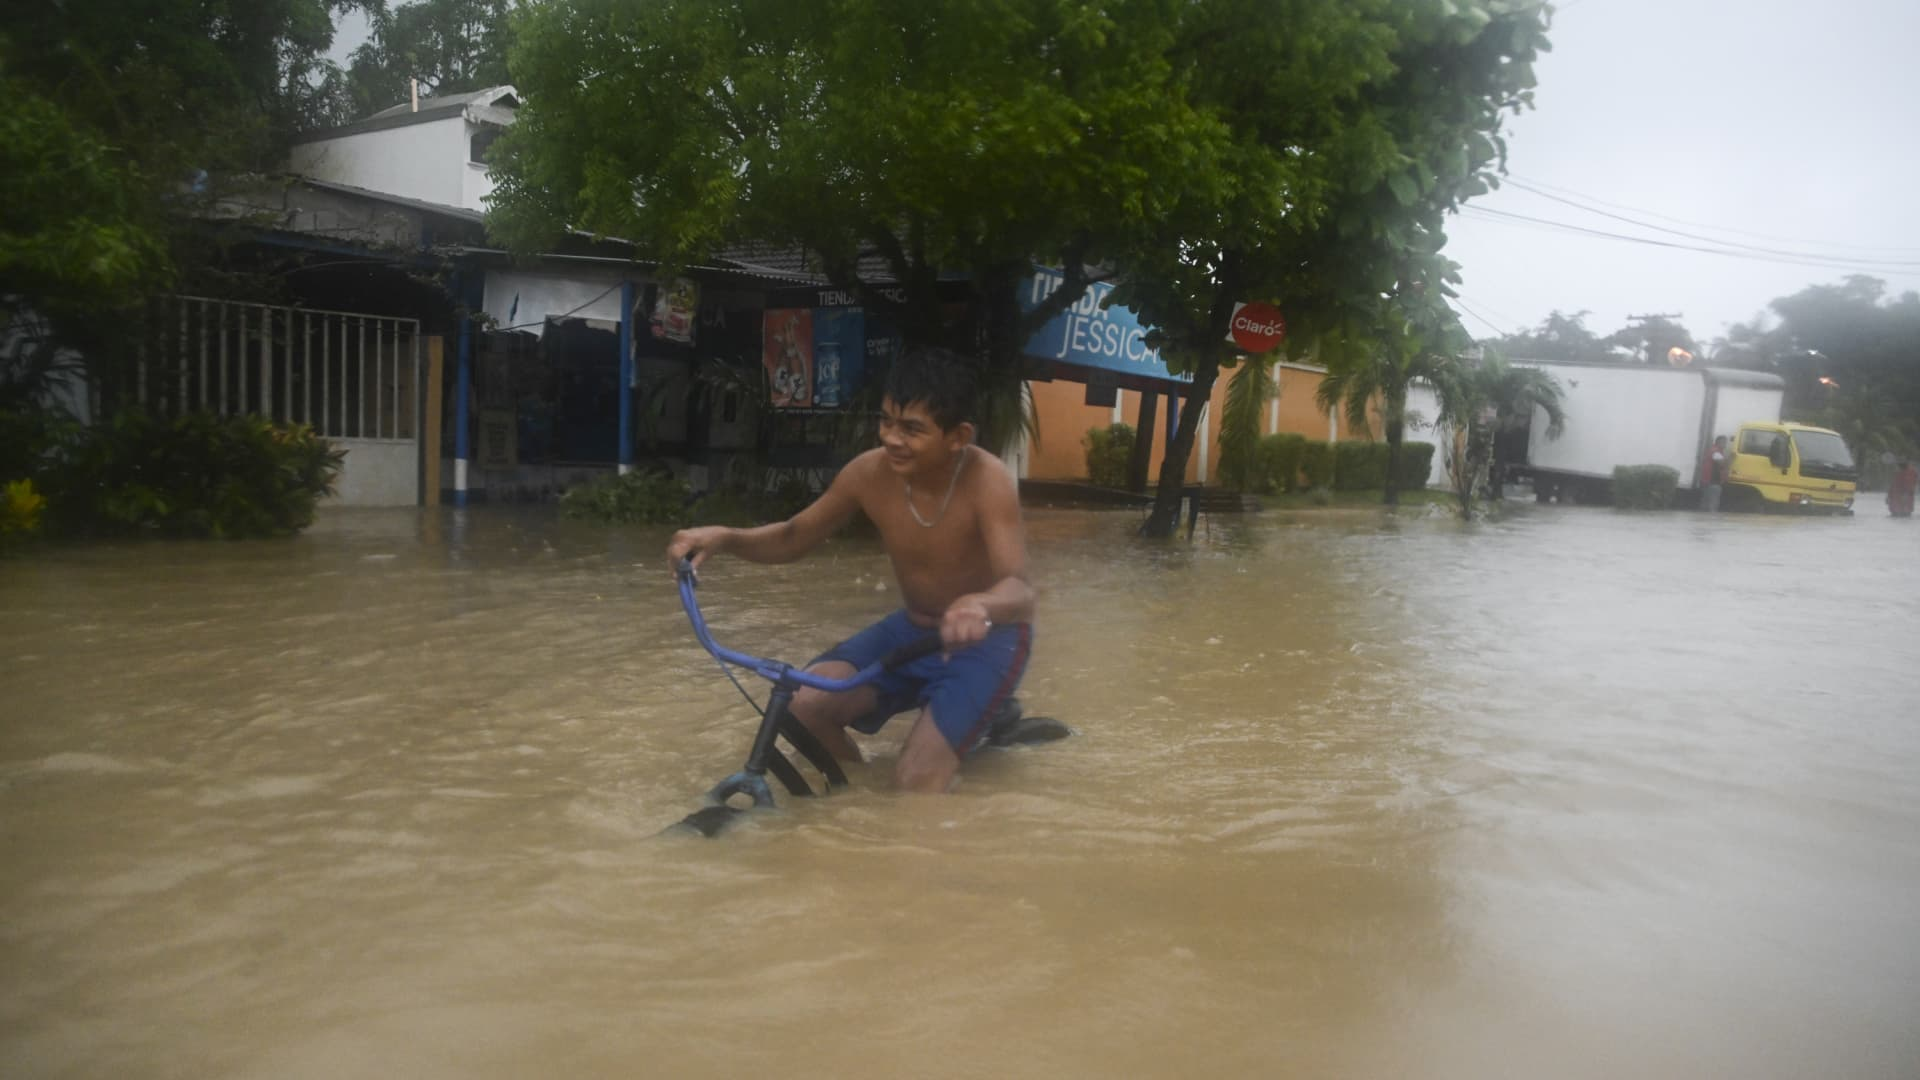 A boy rides a bicycle along a flooded street due to the heavy rains caused by Hurricane Eta, now degraded to a tropical storm, in Puerto Barrios, Izabal 310 km north Guatemala City on November 5, 2020.